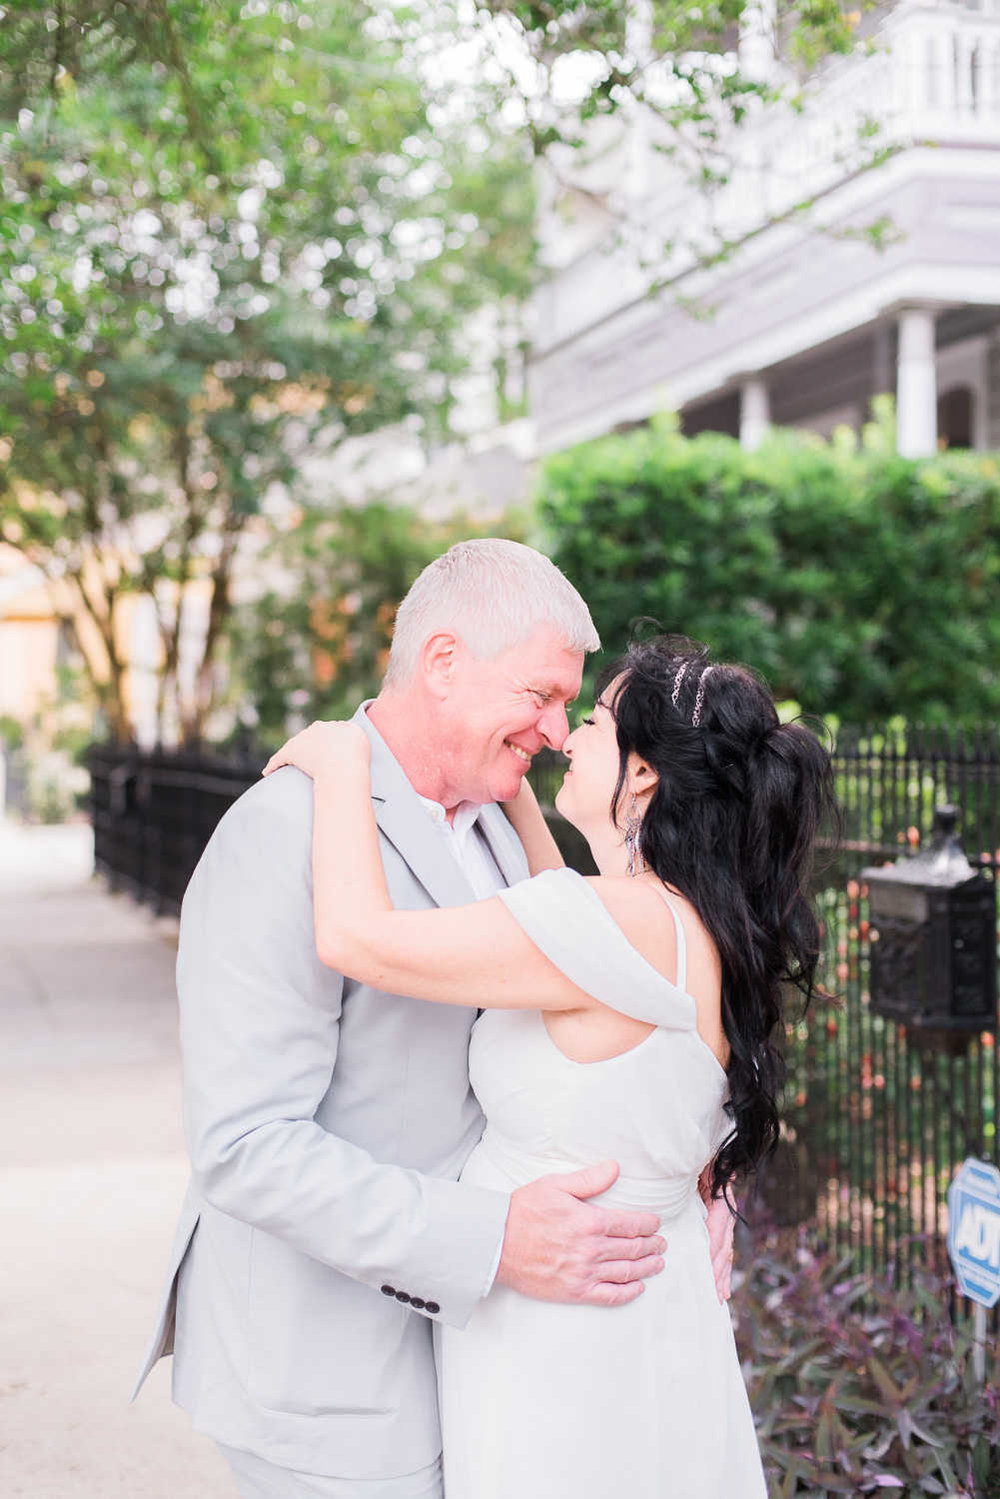 New Orleans Elopement Photographer